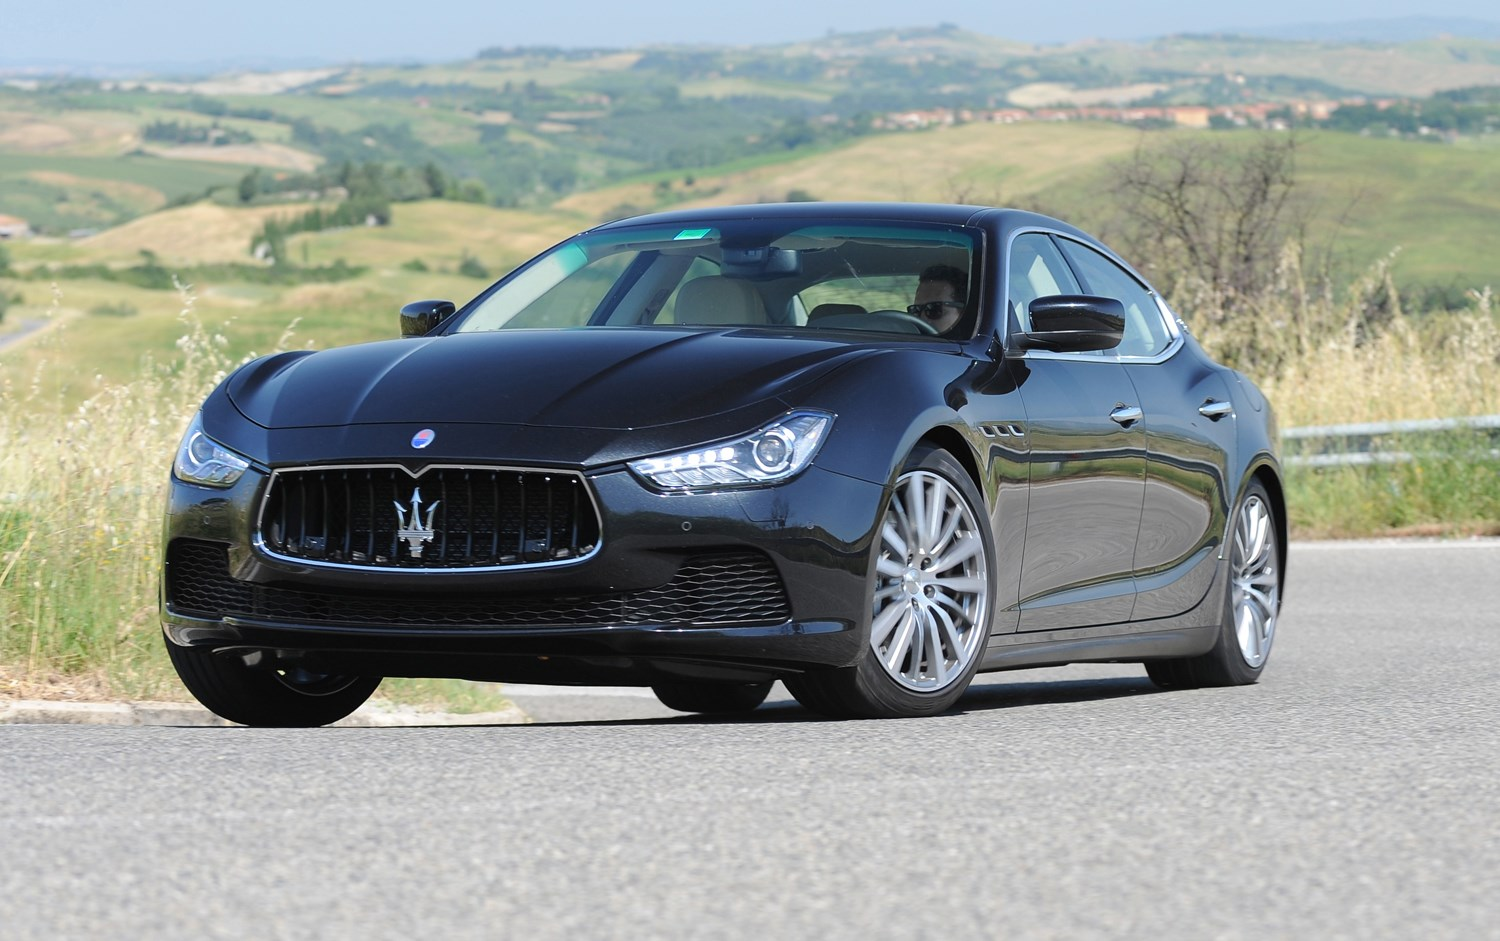 maserati ghibli saloon 2013 photos parkers. Black Bedroom Furniture Sets. Home Design Ideas